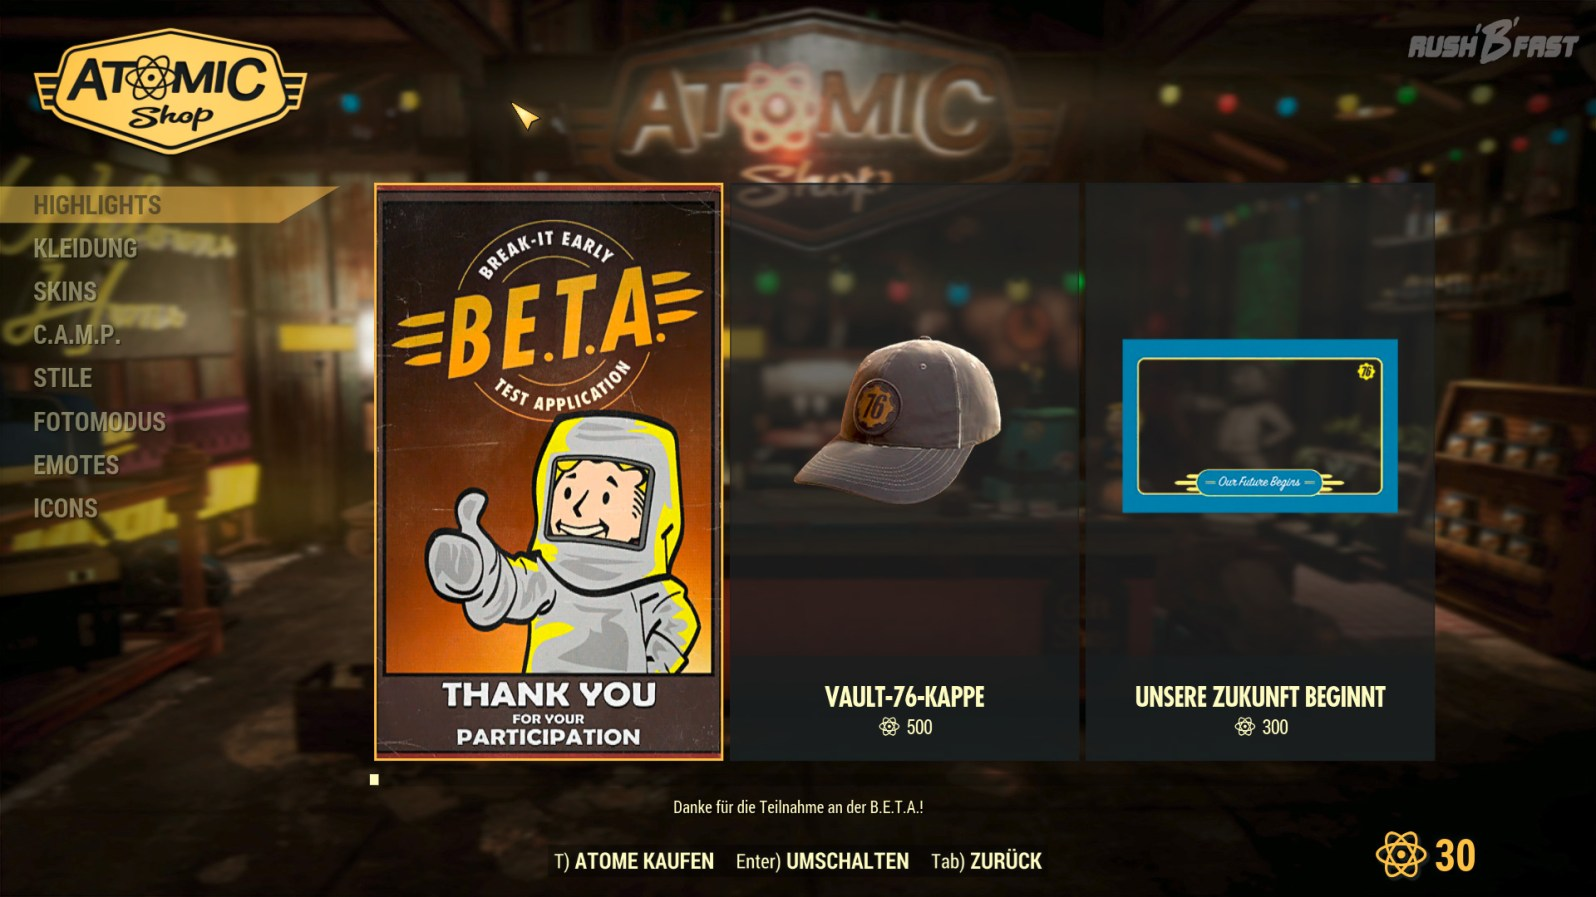 Fallout 76 - Atomic Shop - Mikrotransaktionen